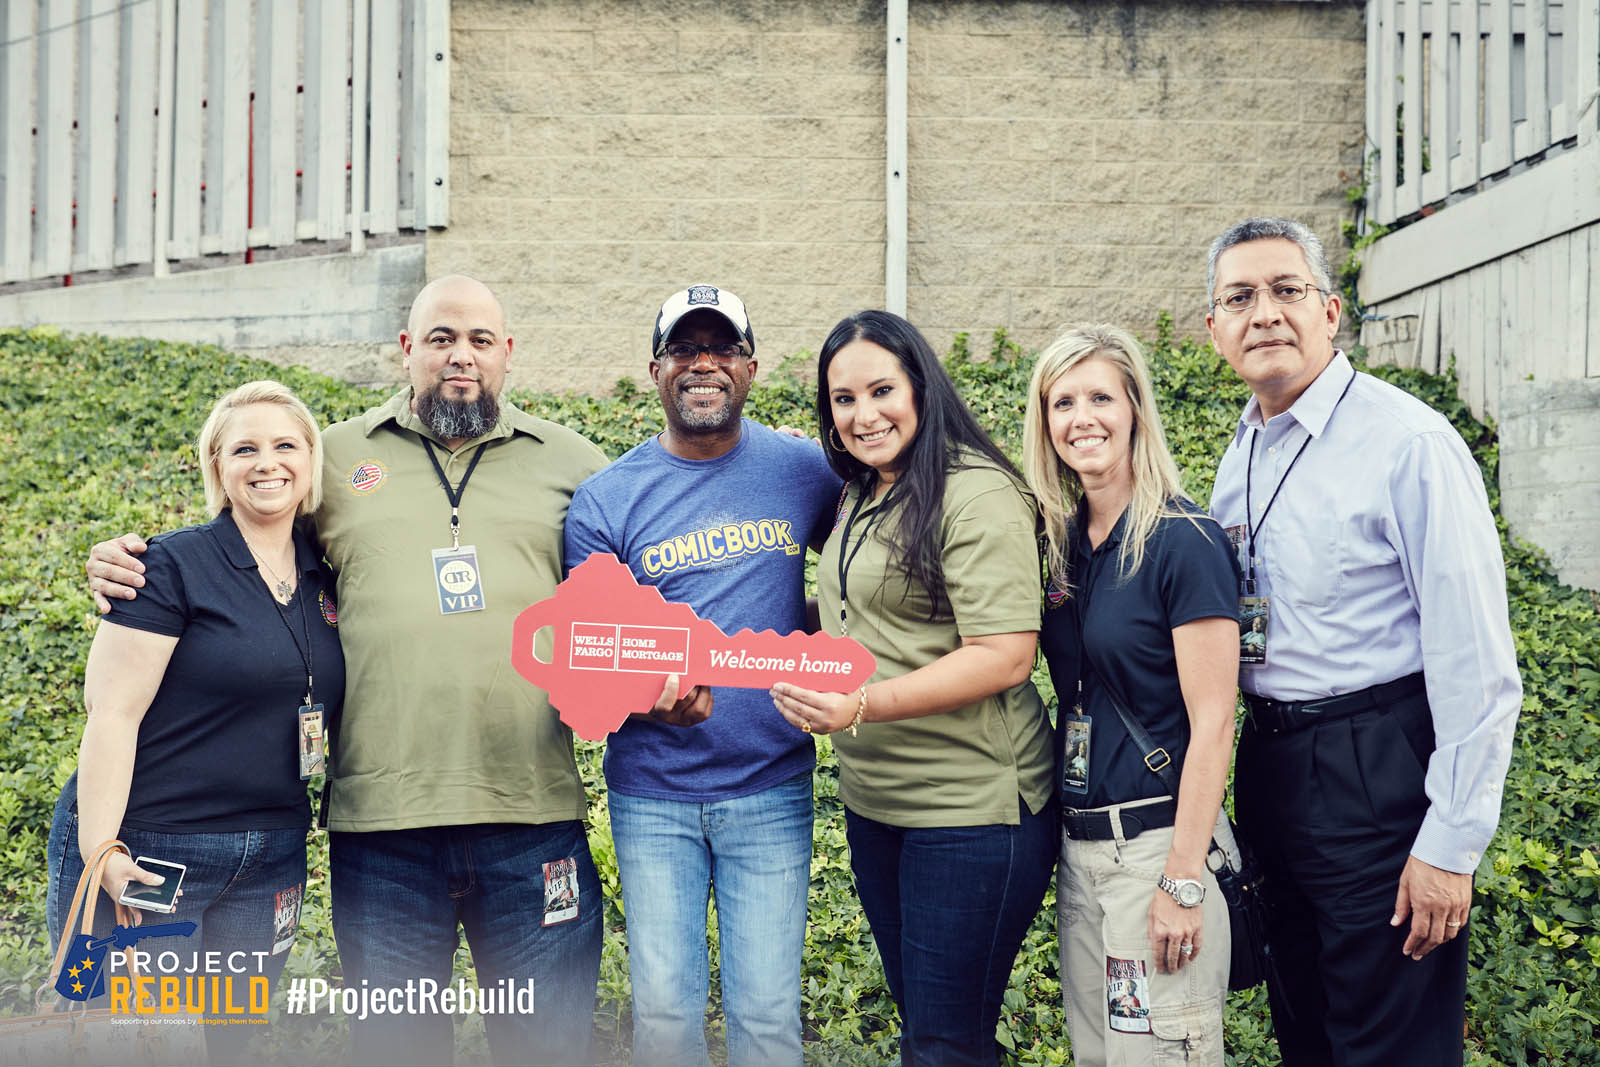 AUG 01 - DARIUS RUCKER GAME DAY PRODUCTIONSEmptyName 827